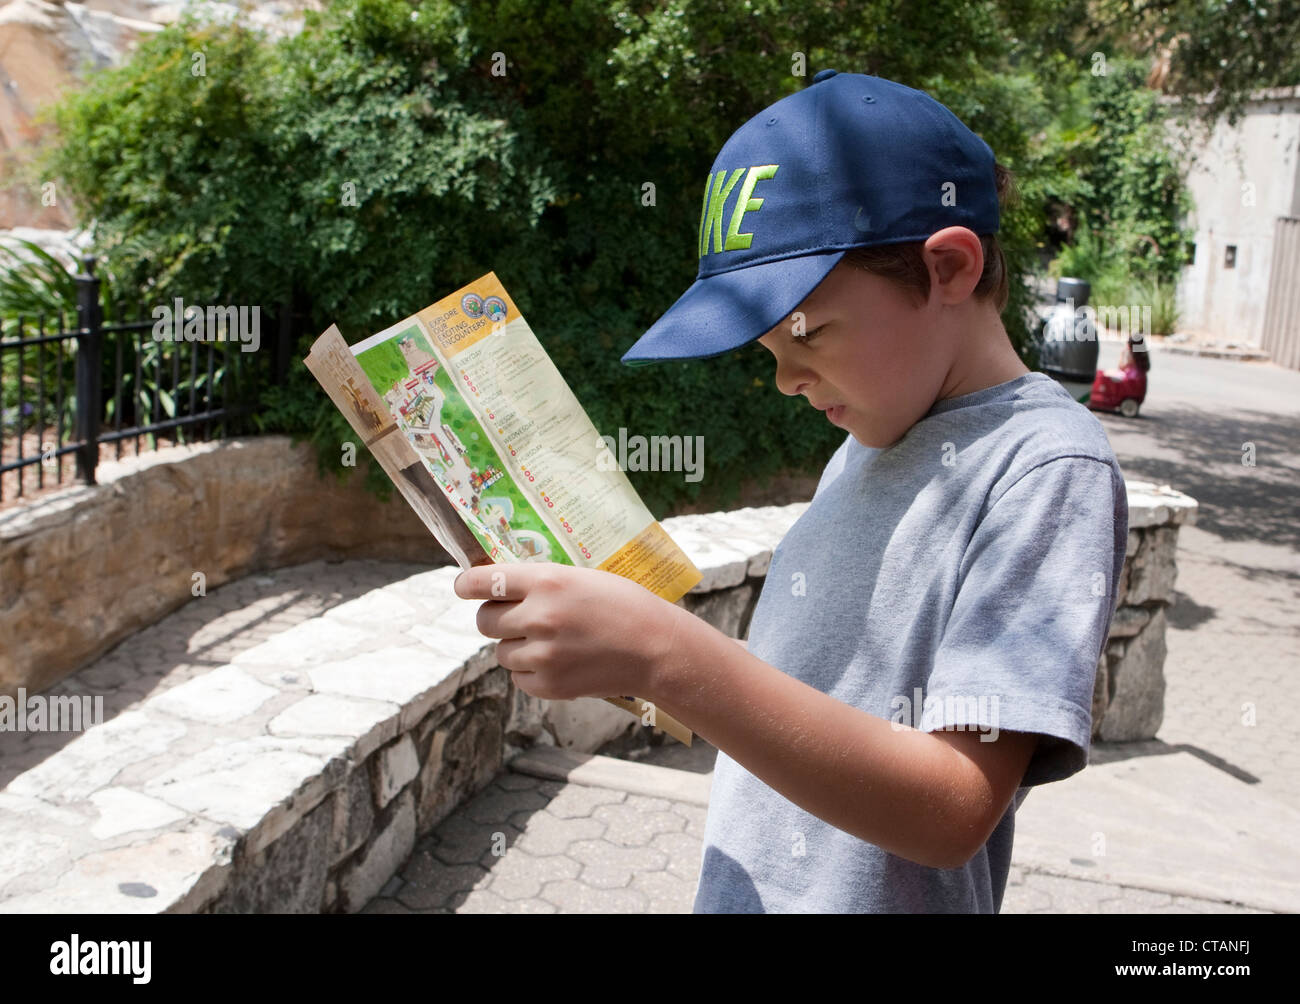 7 year old Mexican-American boy reads brochure and looks at map of ...